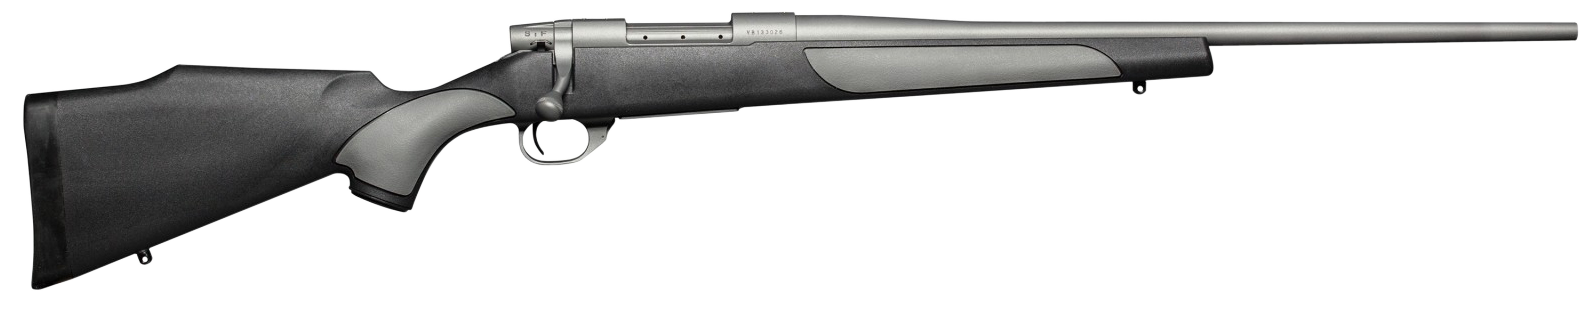 Weatherby Vanguard Weatherguard 257 Wby Mag 26